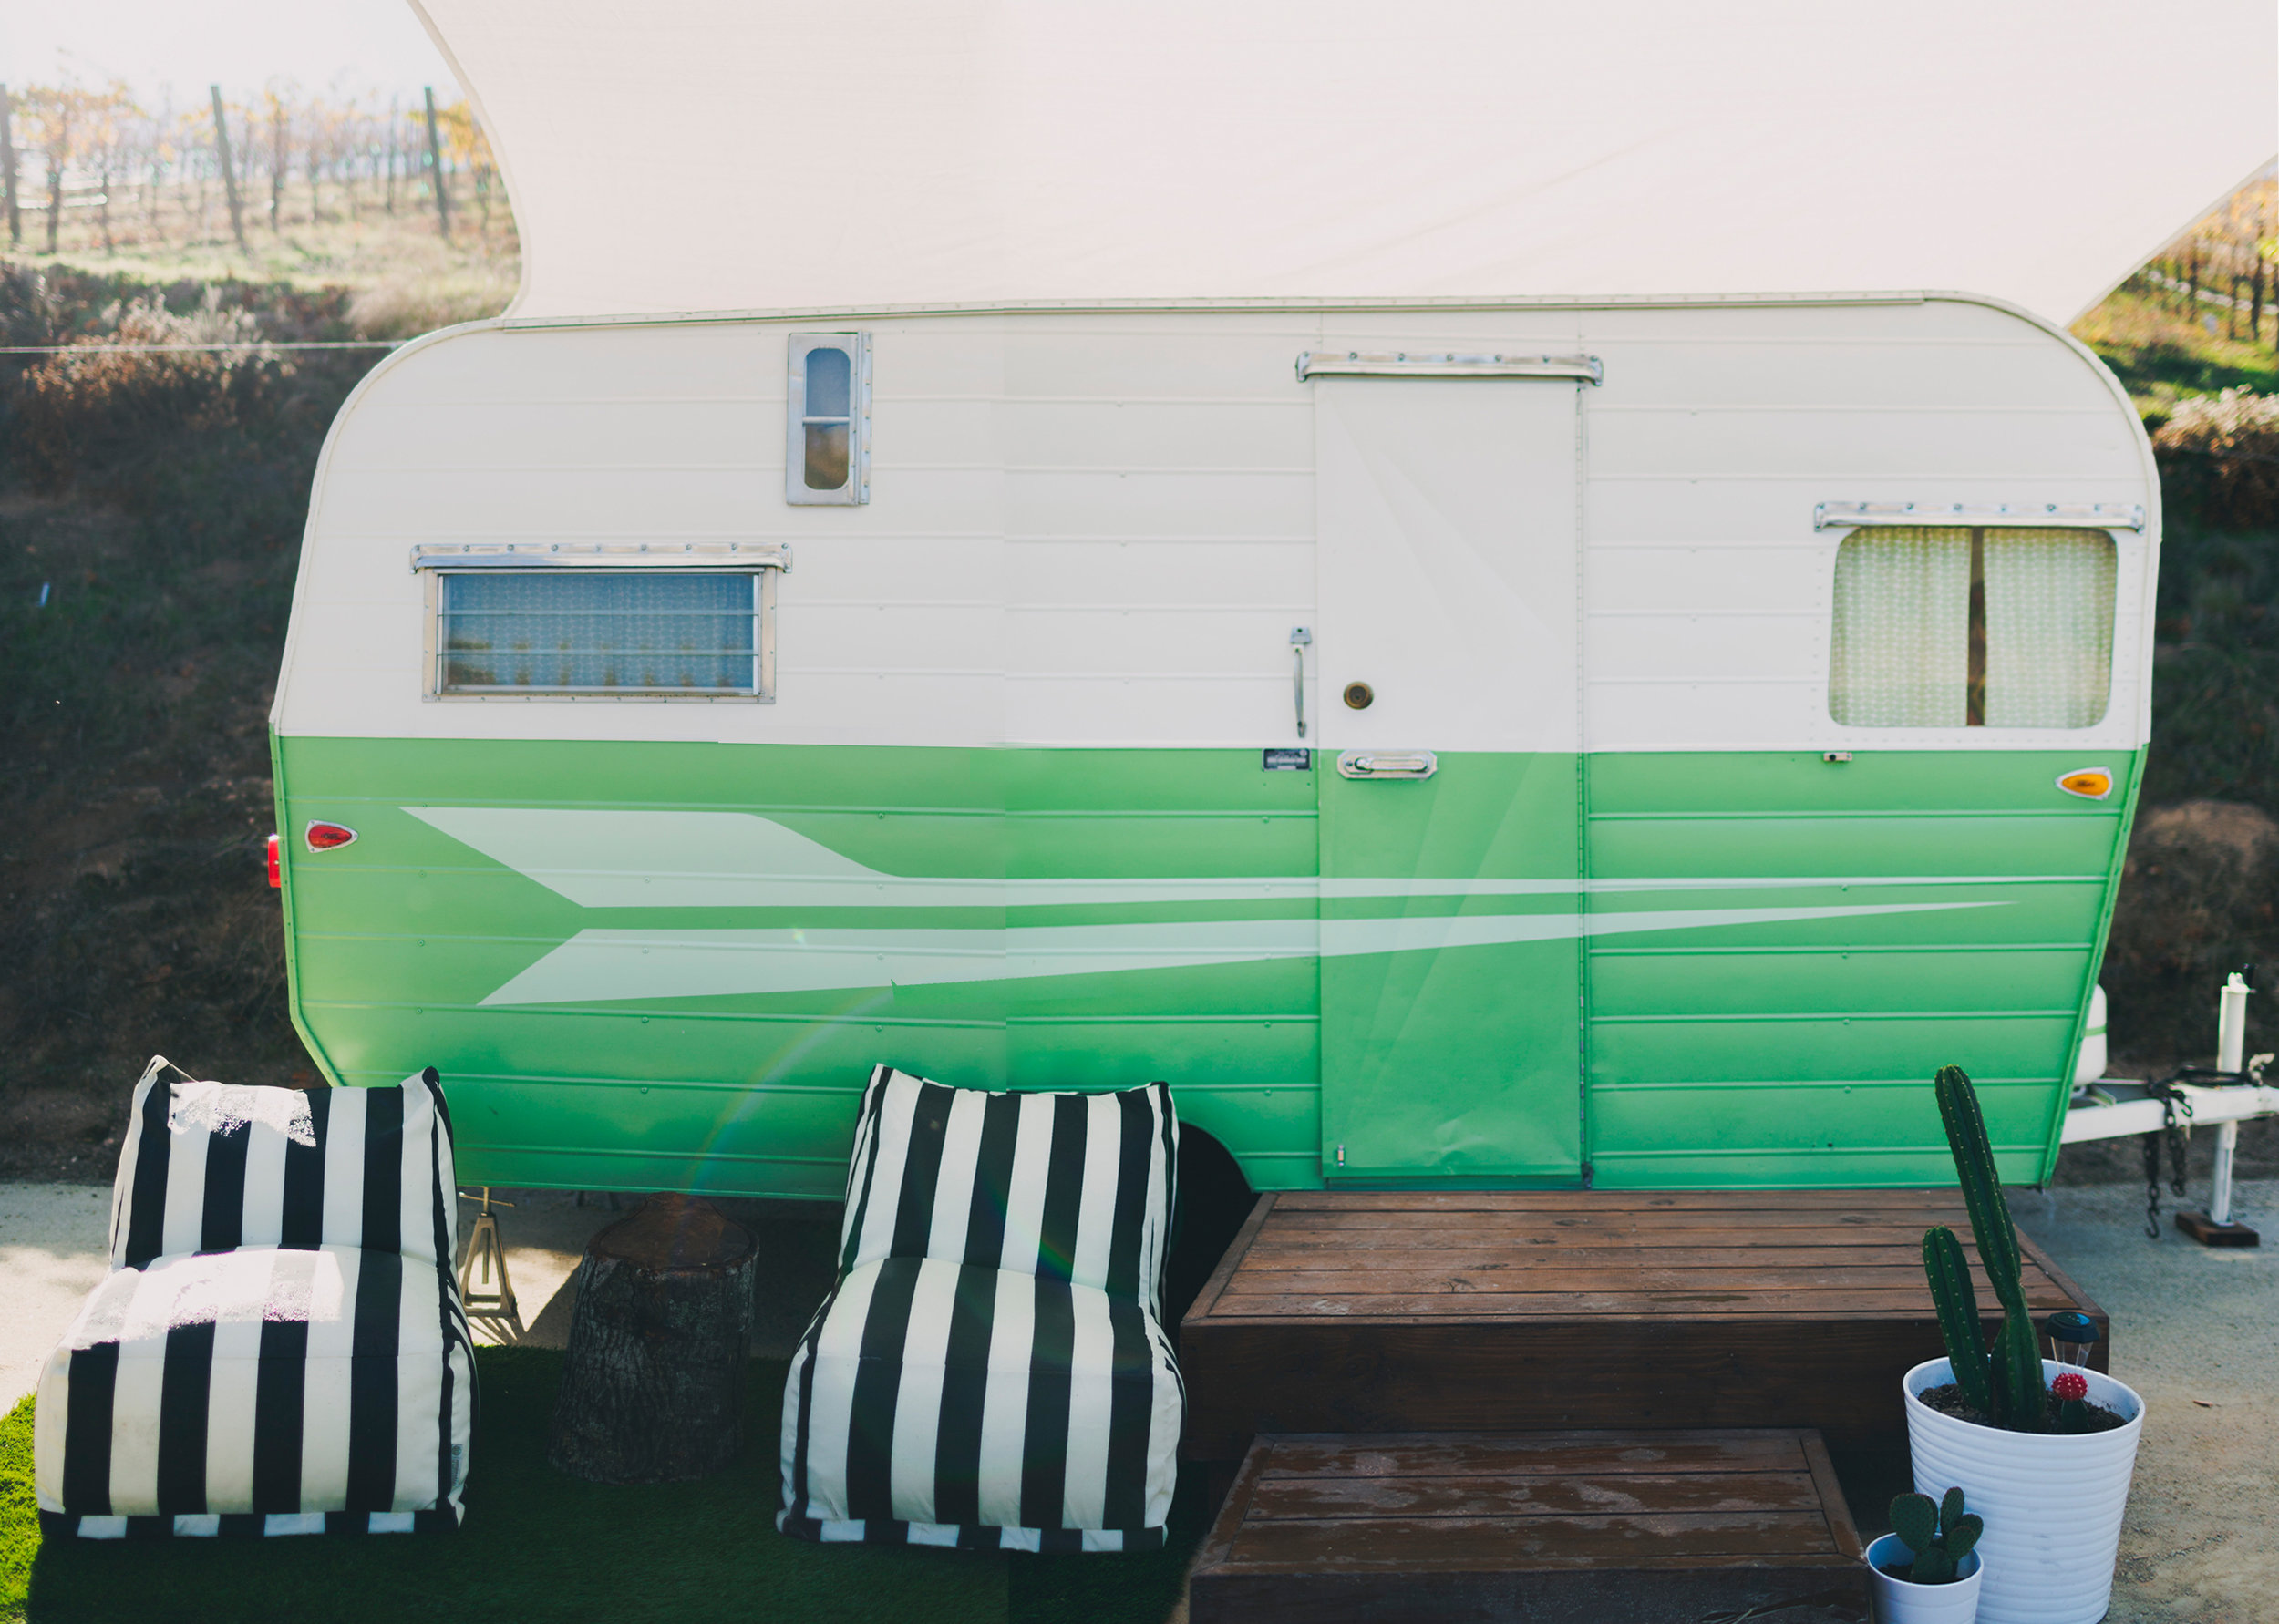 1960'S GREEN VINTAGE TRAILER AVAILABLE FOR MOVIE AND PRODUCTION RENTALS, FOR BACKSTAGE LOUNGES, FILMING, TV & MOVIES, FOR HAIR AND MAKEUP, COMMERCIAL AND CATALOGUE PHOTO SHOOTS & MORE